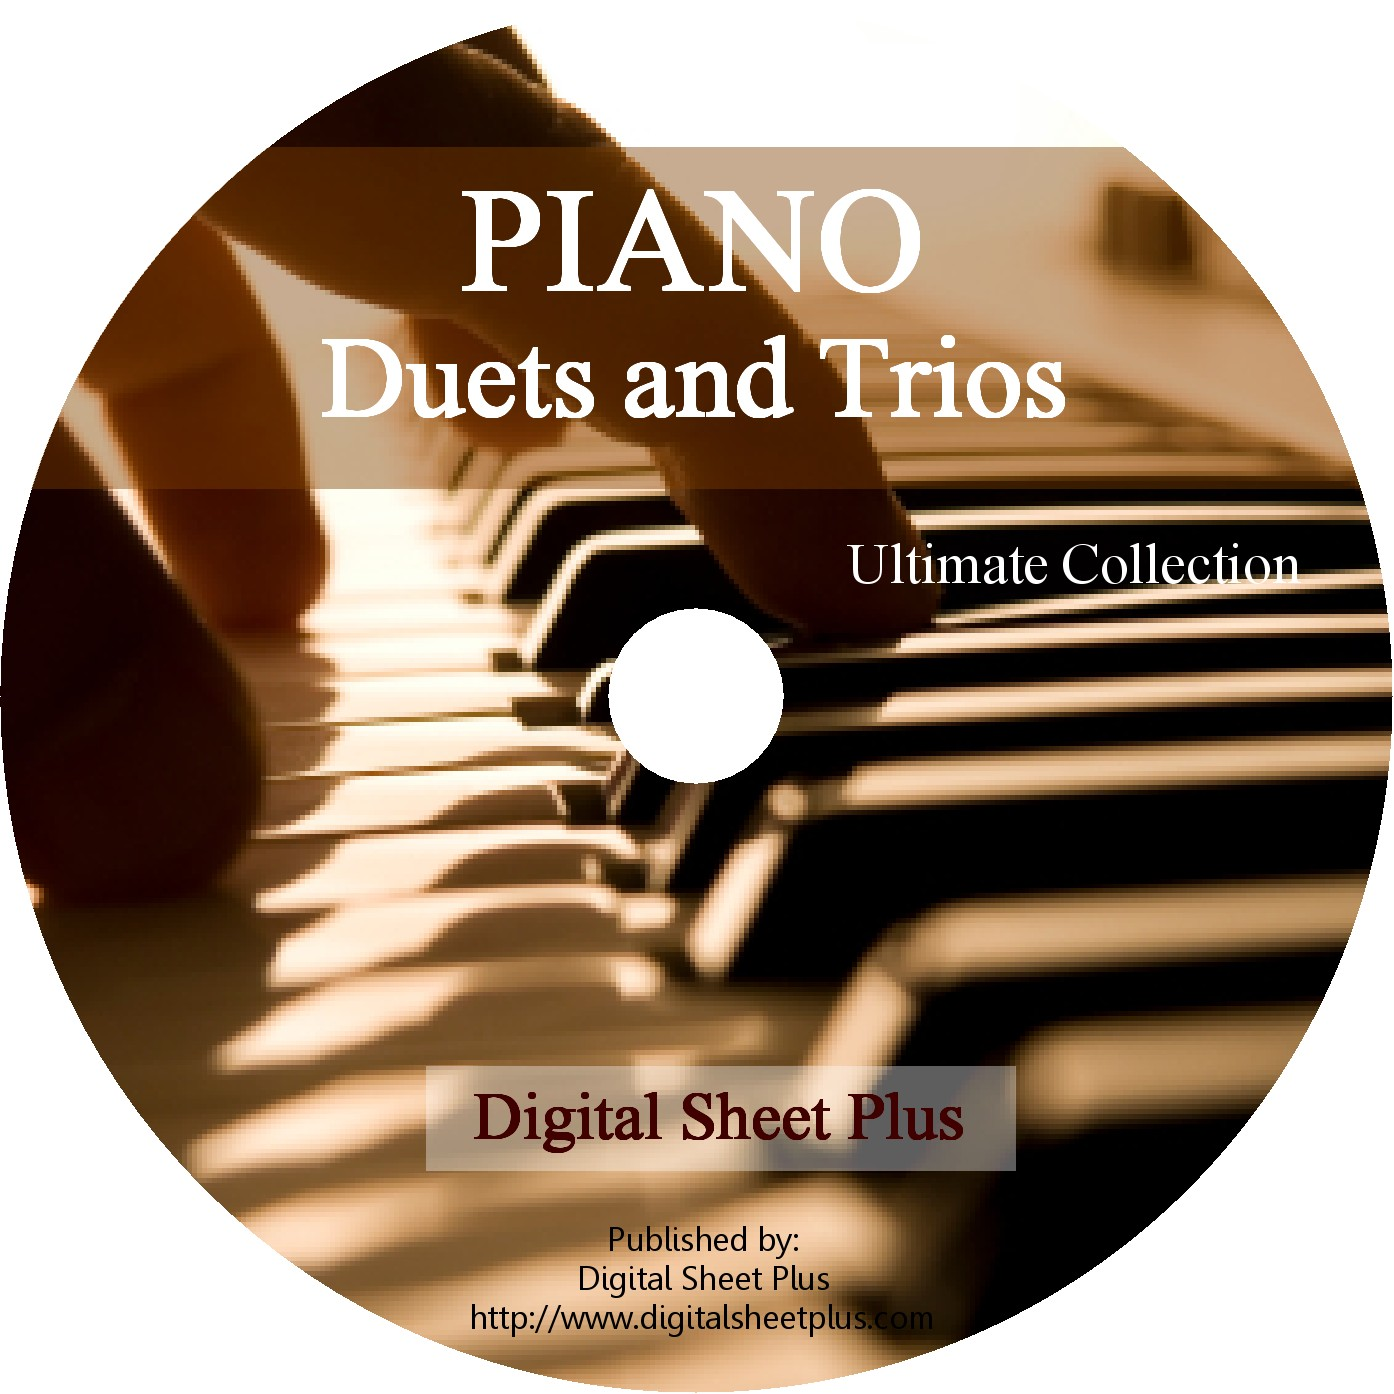 piano_duets_trios_cd_cover.jpg